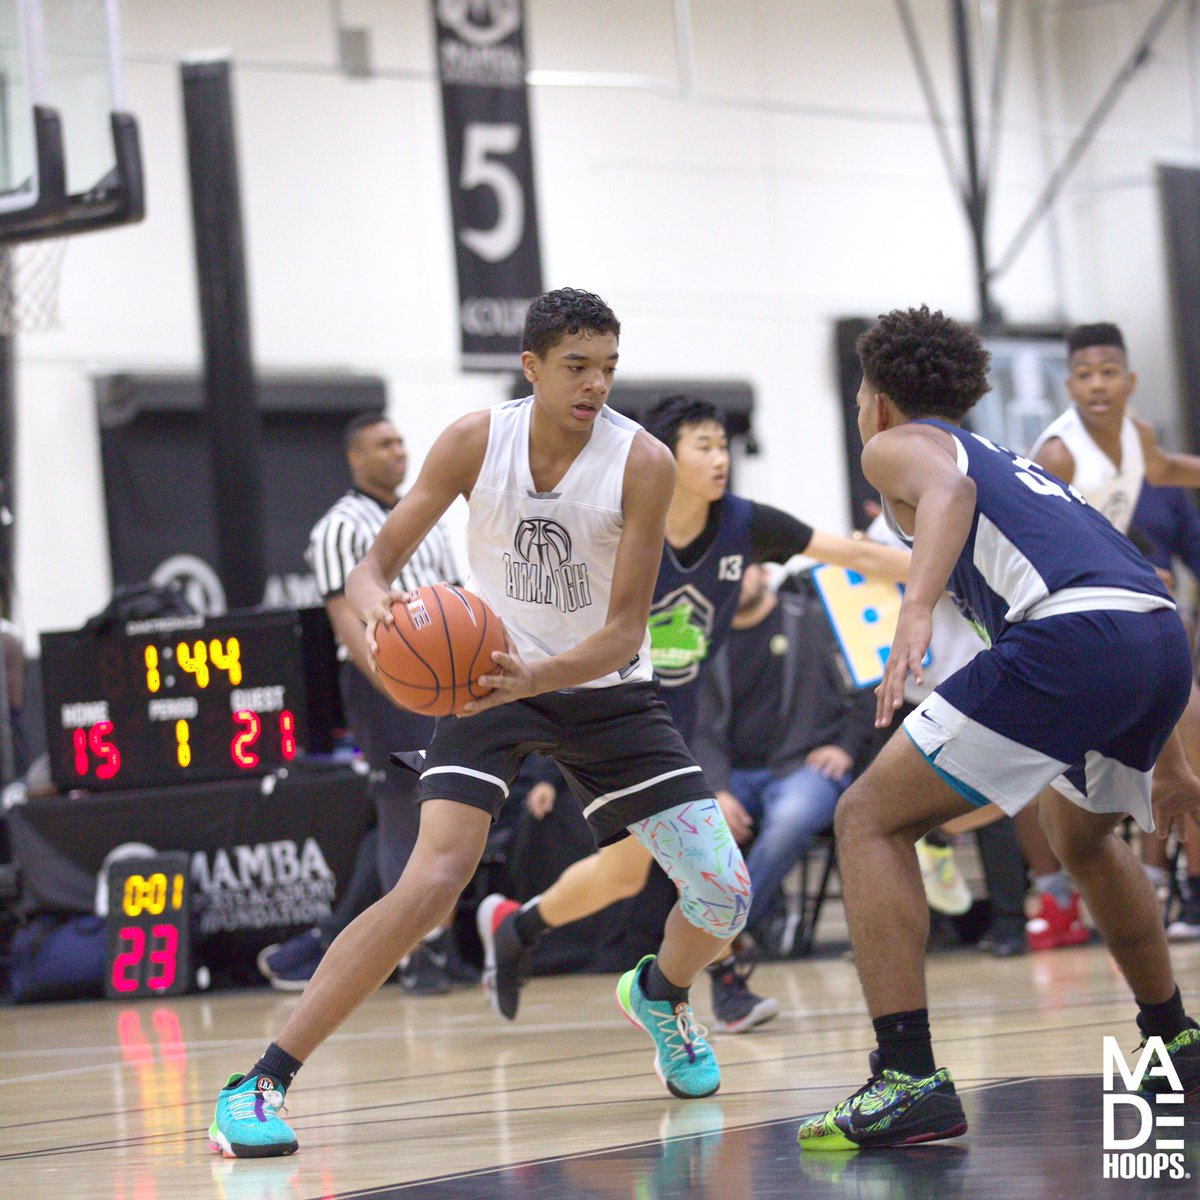 "2024 6'6"" F Micah Smith (Fayetteville, GA) has been the leading producer for Aim High thus far during #WestLea8ue. His motor & length make him a major force on both ends. 🧬📈 https://t.co/O1txNOxuL6"